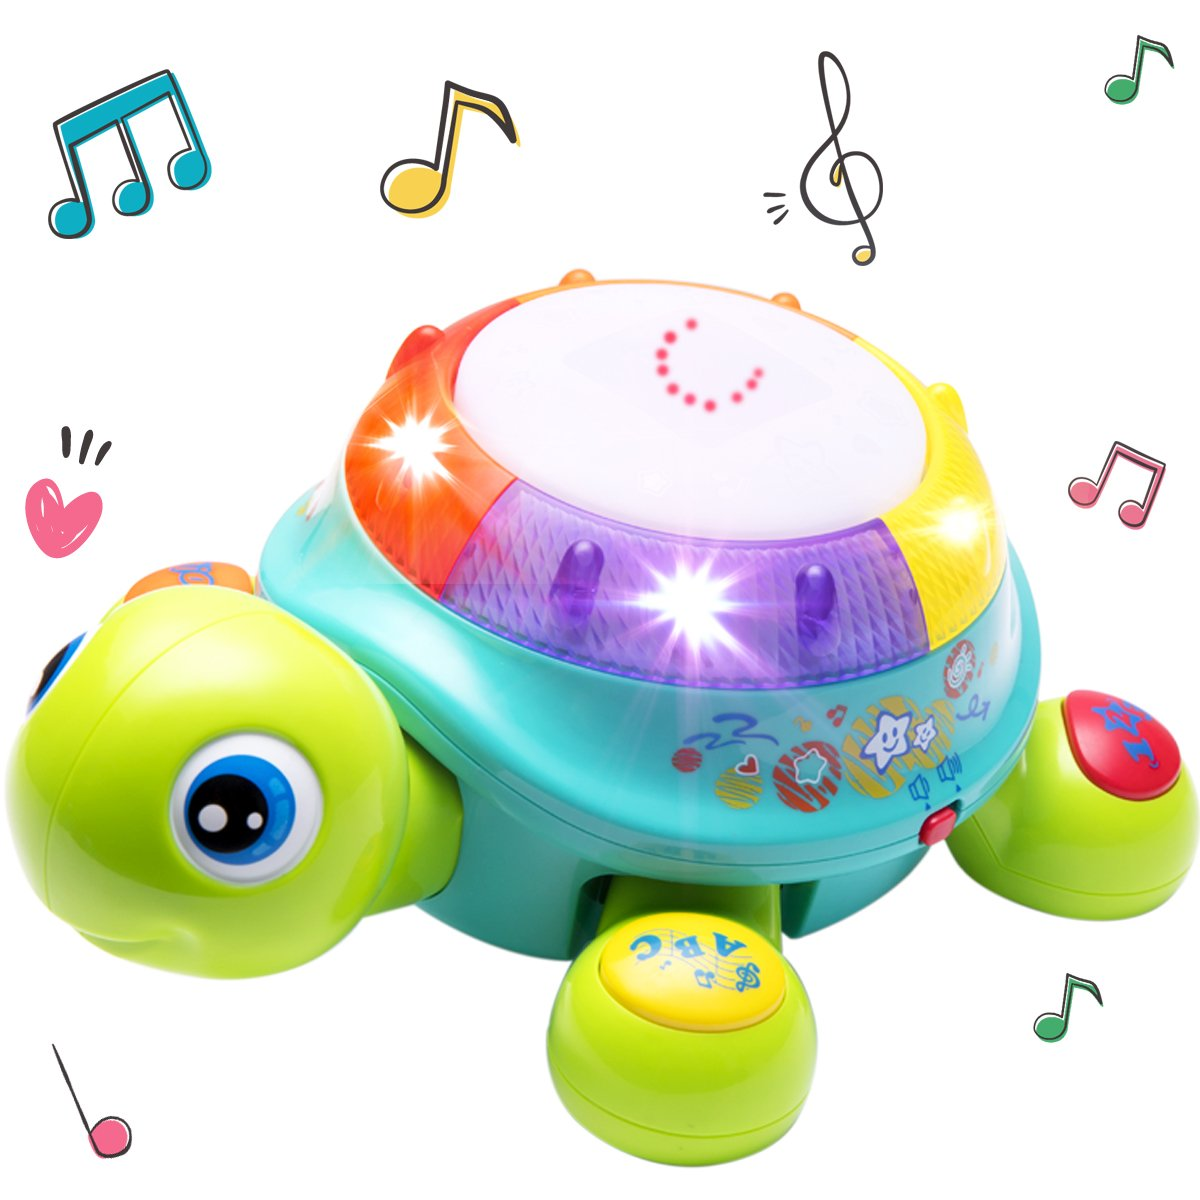 Musical Turtle Toy, Electronic Toys, English N Spanish Learning, Lights N Sound, Early Development, Educational Gift for Ages 6, 7, 8, 9, 10, 11, 12 Months Up Infant, Baby, Toddlers, Boys, Girls, Kids